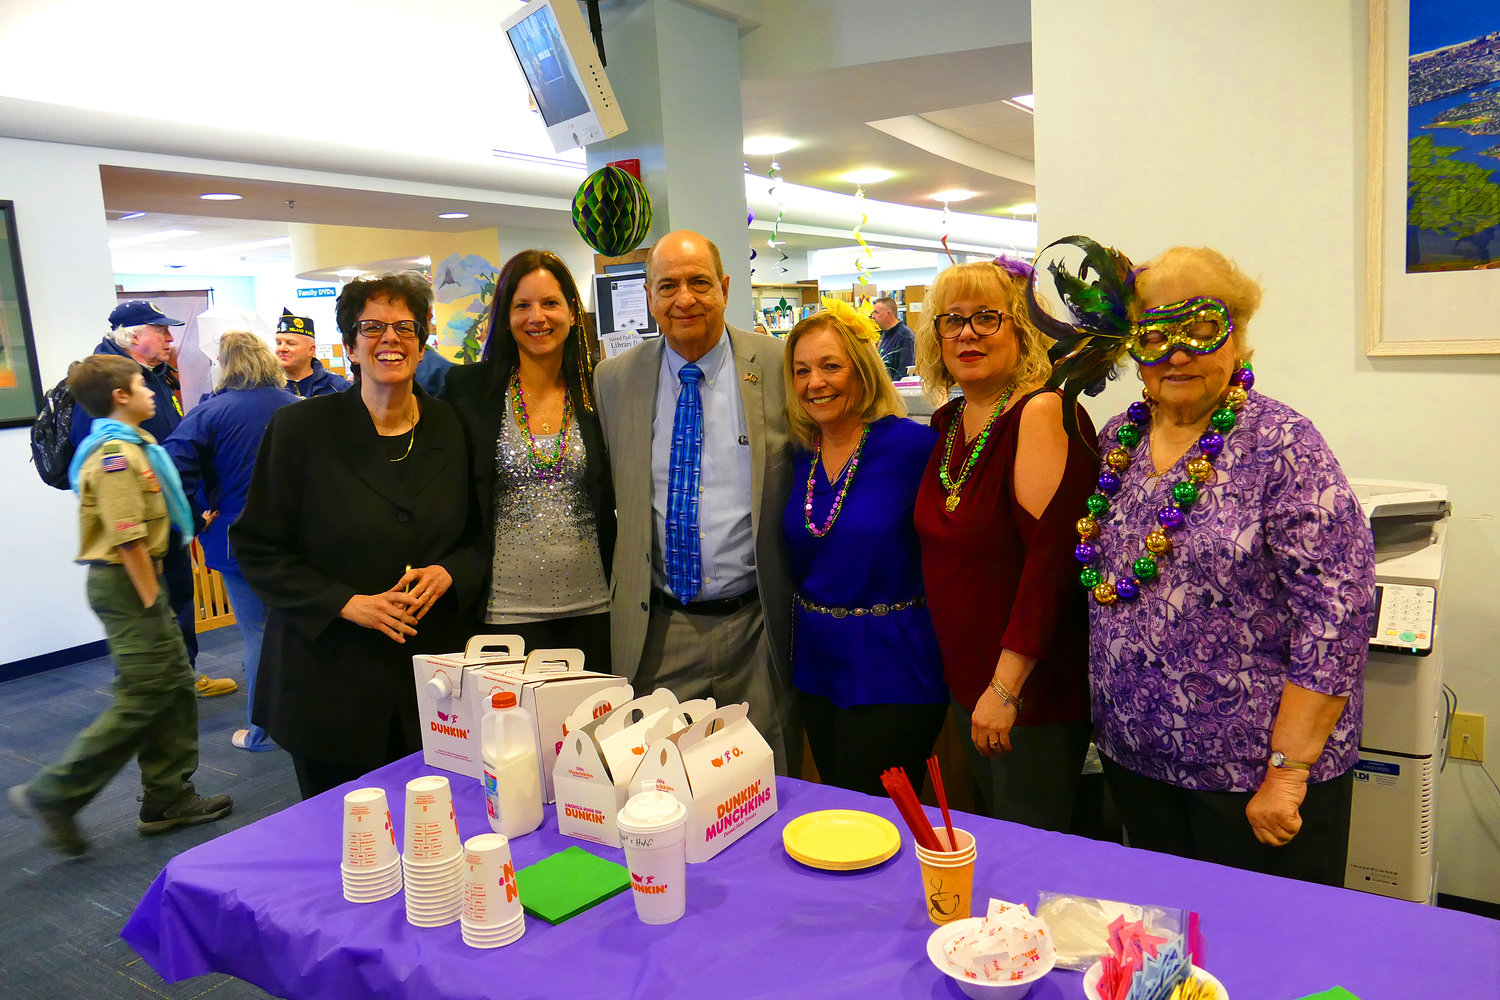 The Island Park Library celebrated Library Day on March 30. The theme of the year's festivities was Mardi Gras.